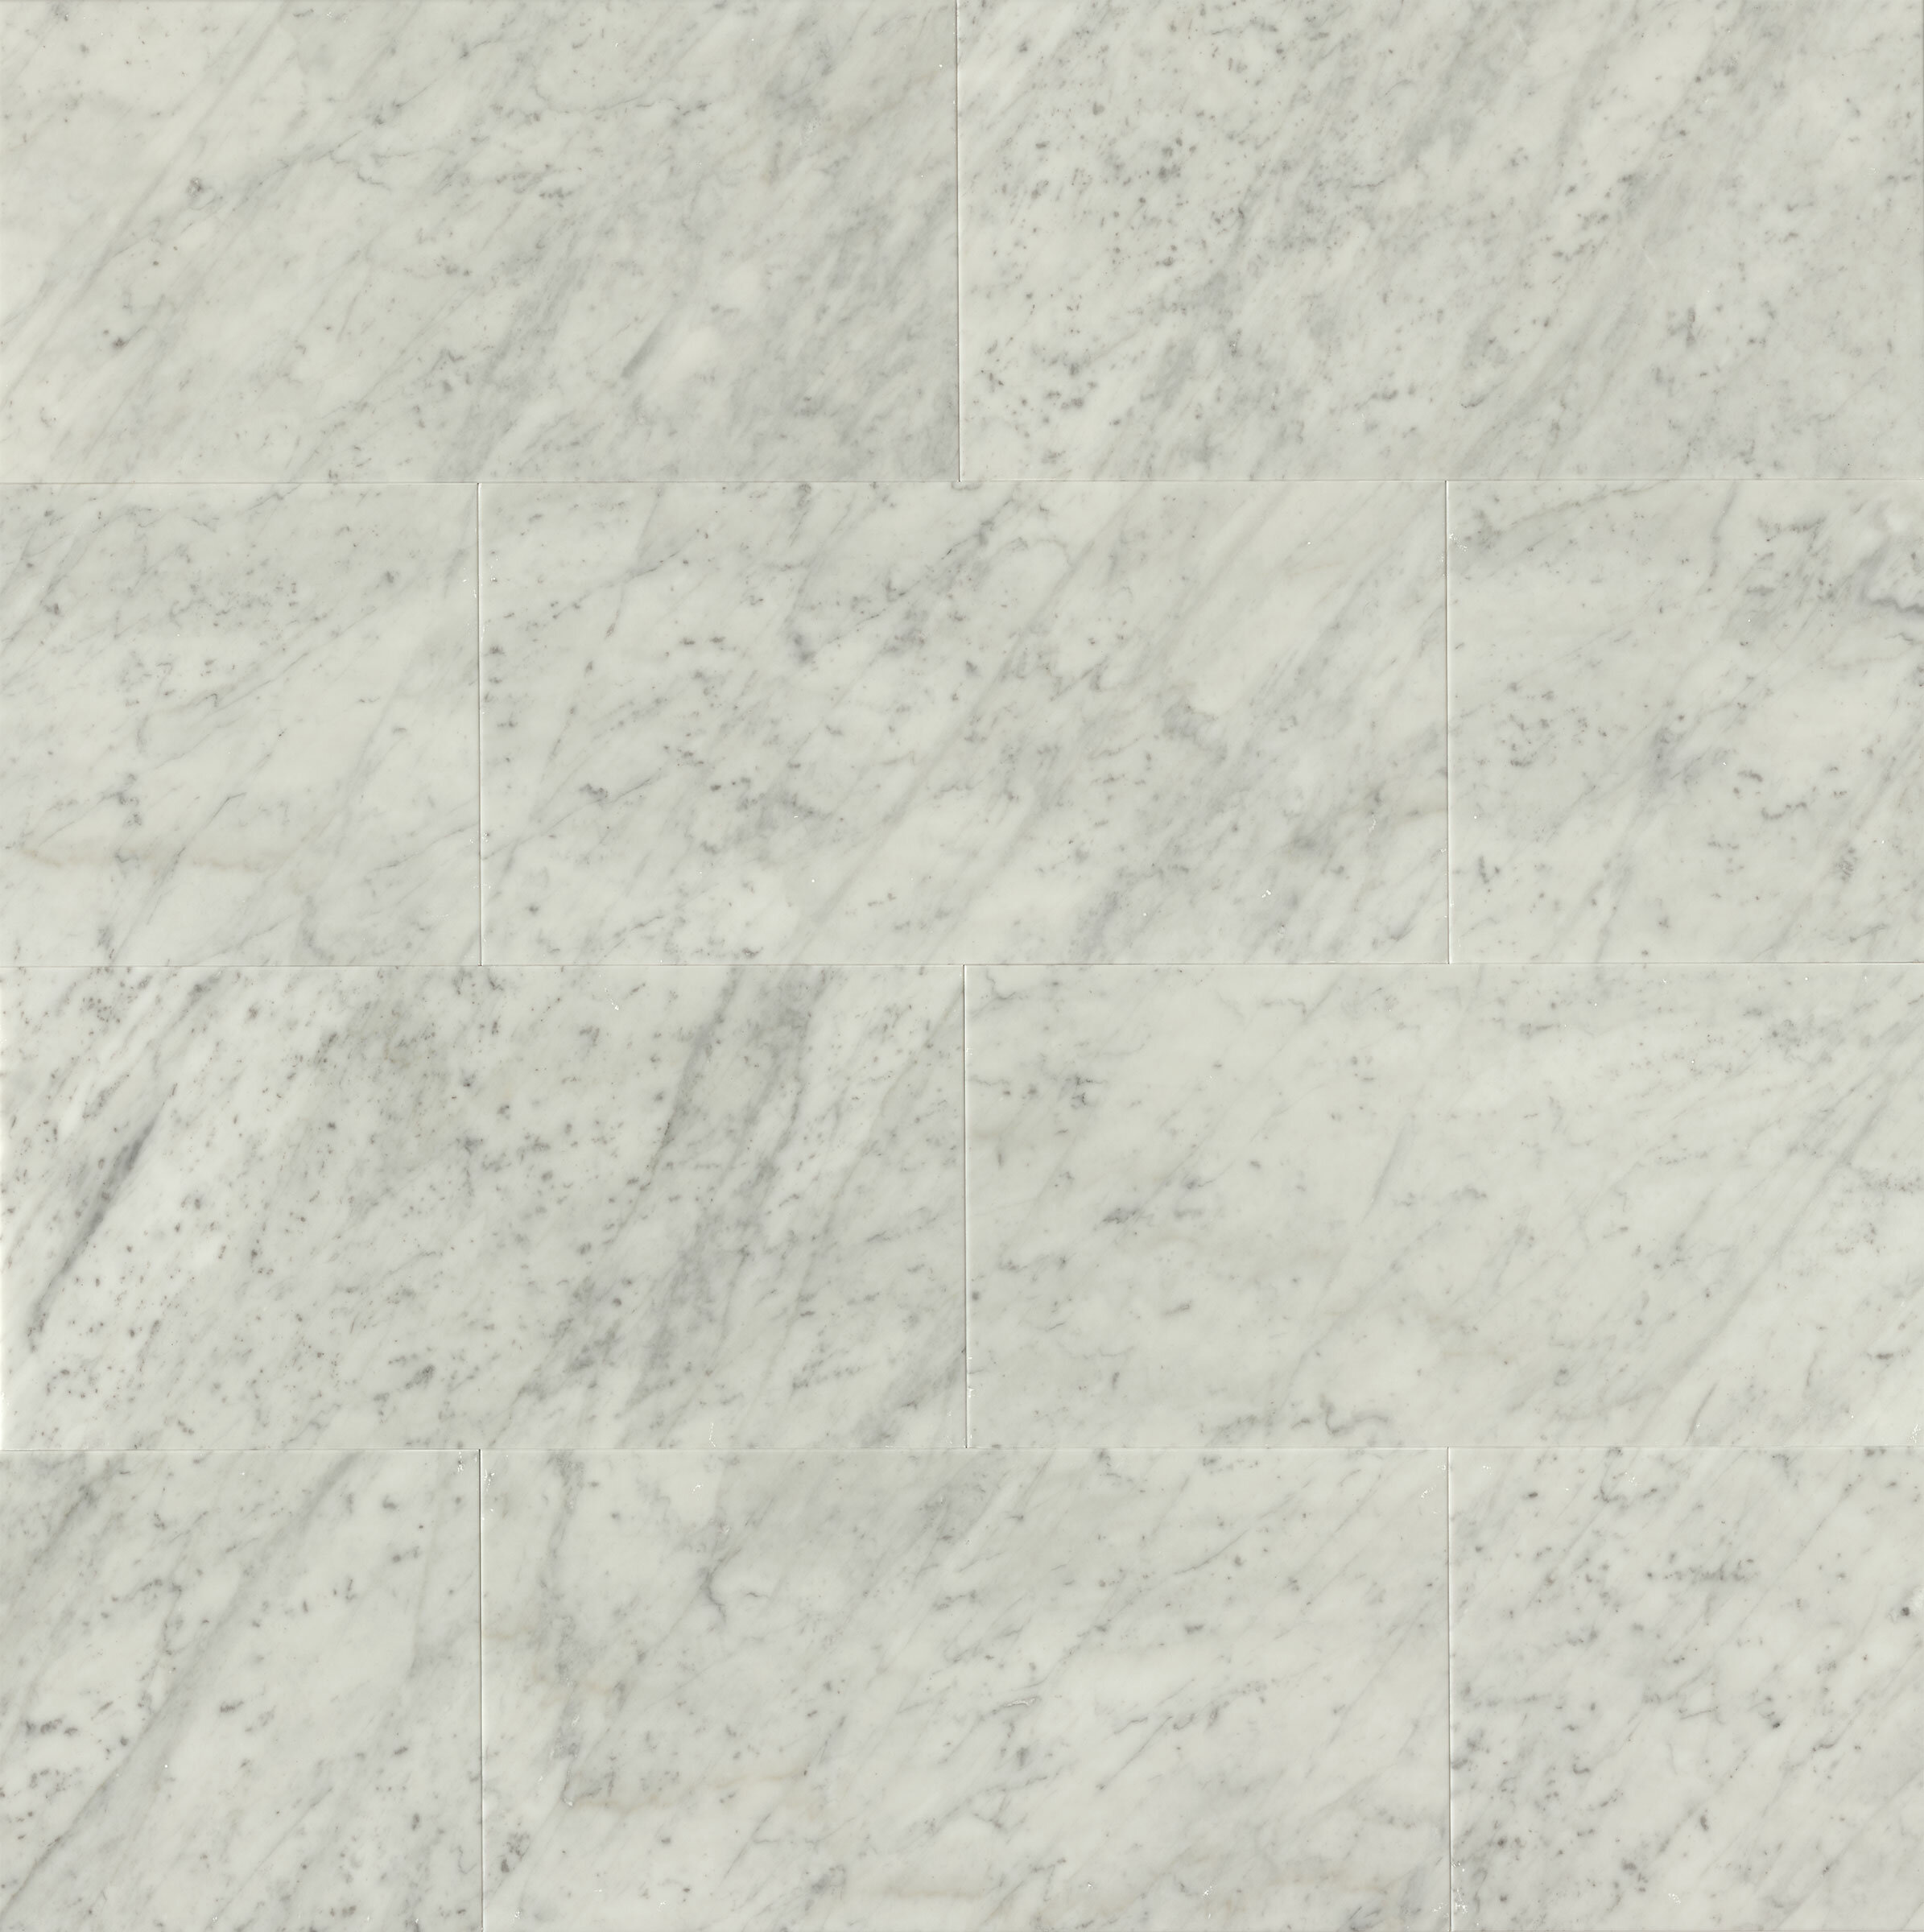 12 X 24 Marble Field Tile In Polished White Carrara